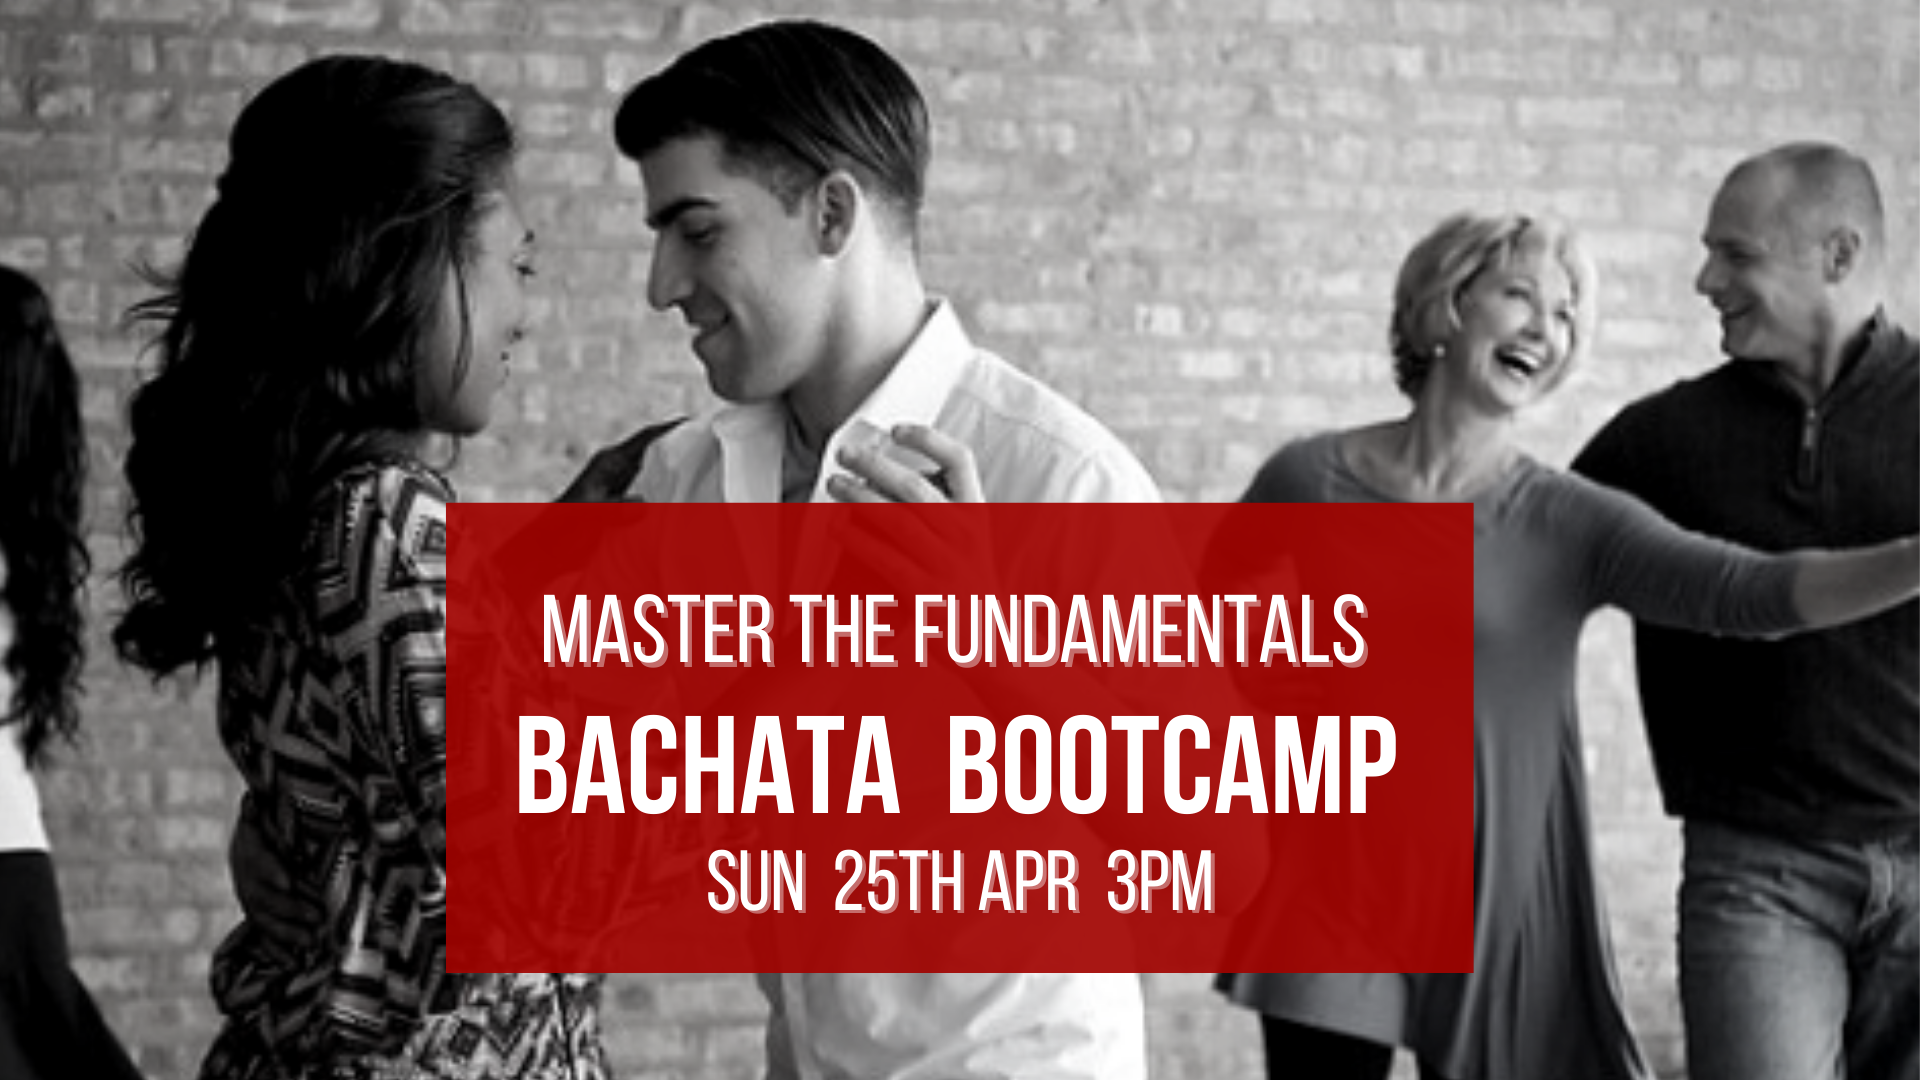 Fundamentals Bachata Bootcamp 25th April